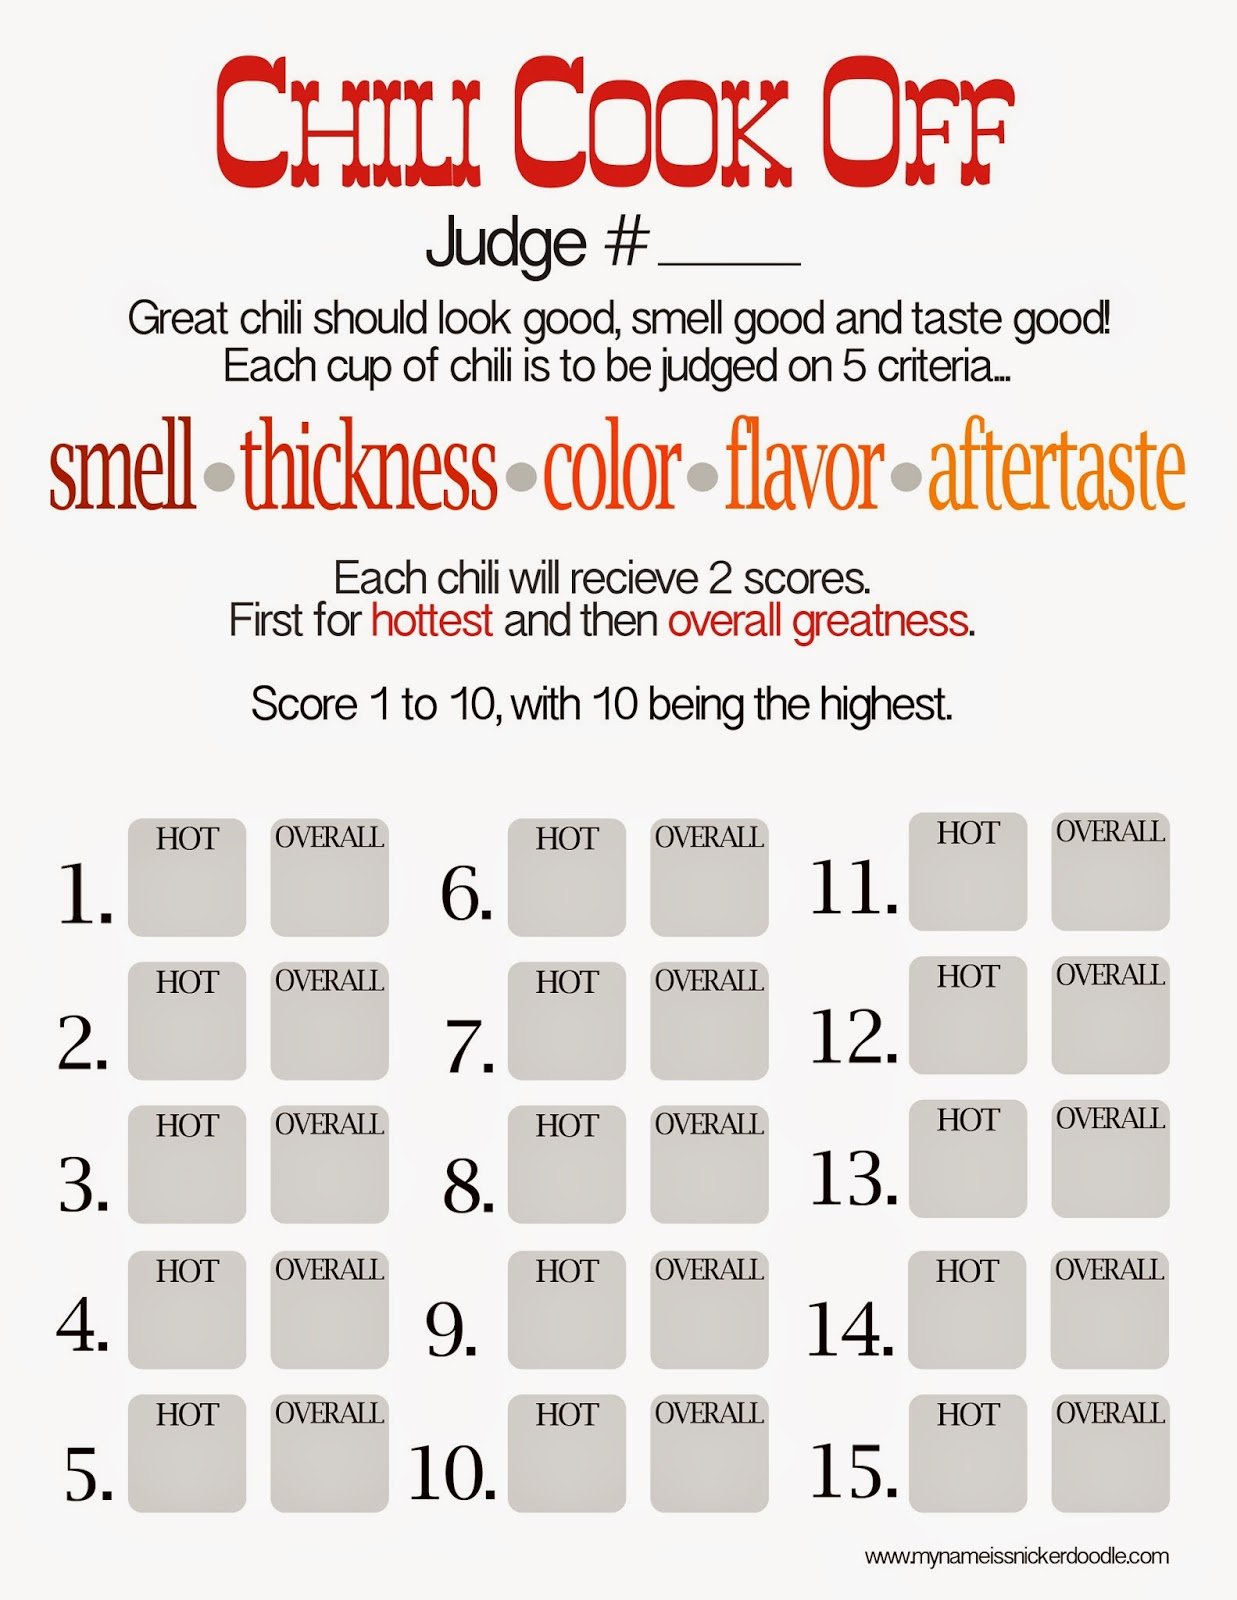 The perfect Chili Cook Off Score Sheet | My Name Is Snickerdoodle